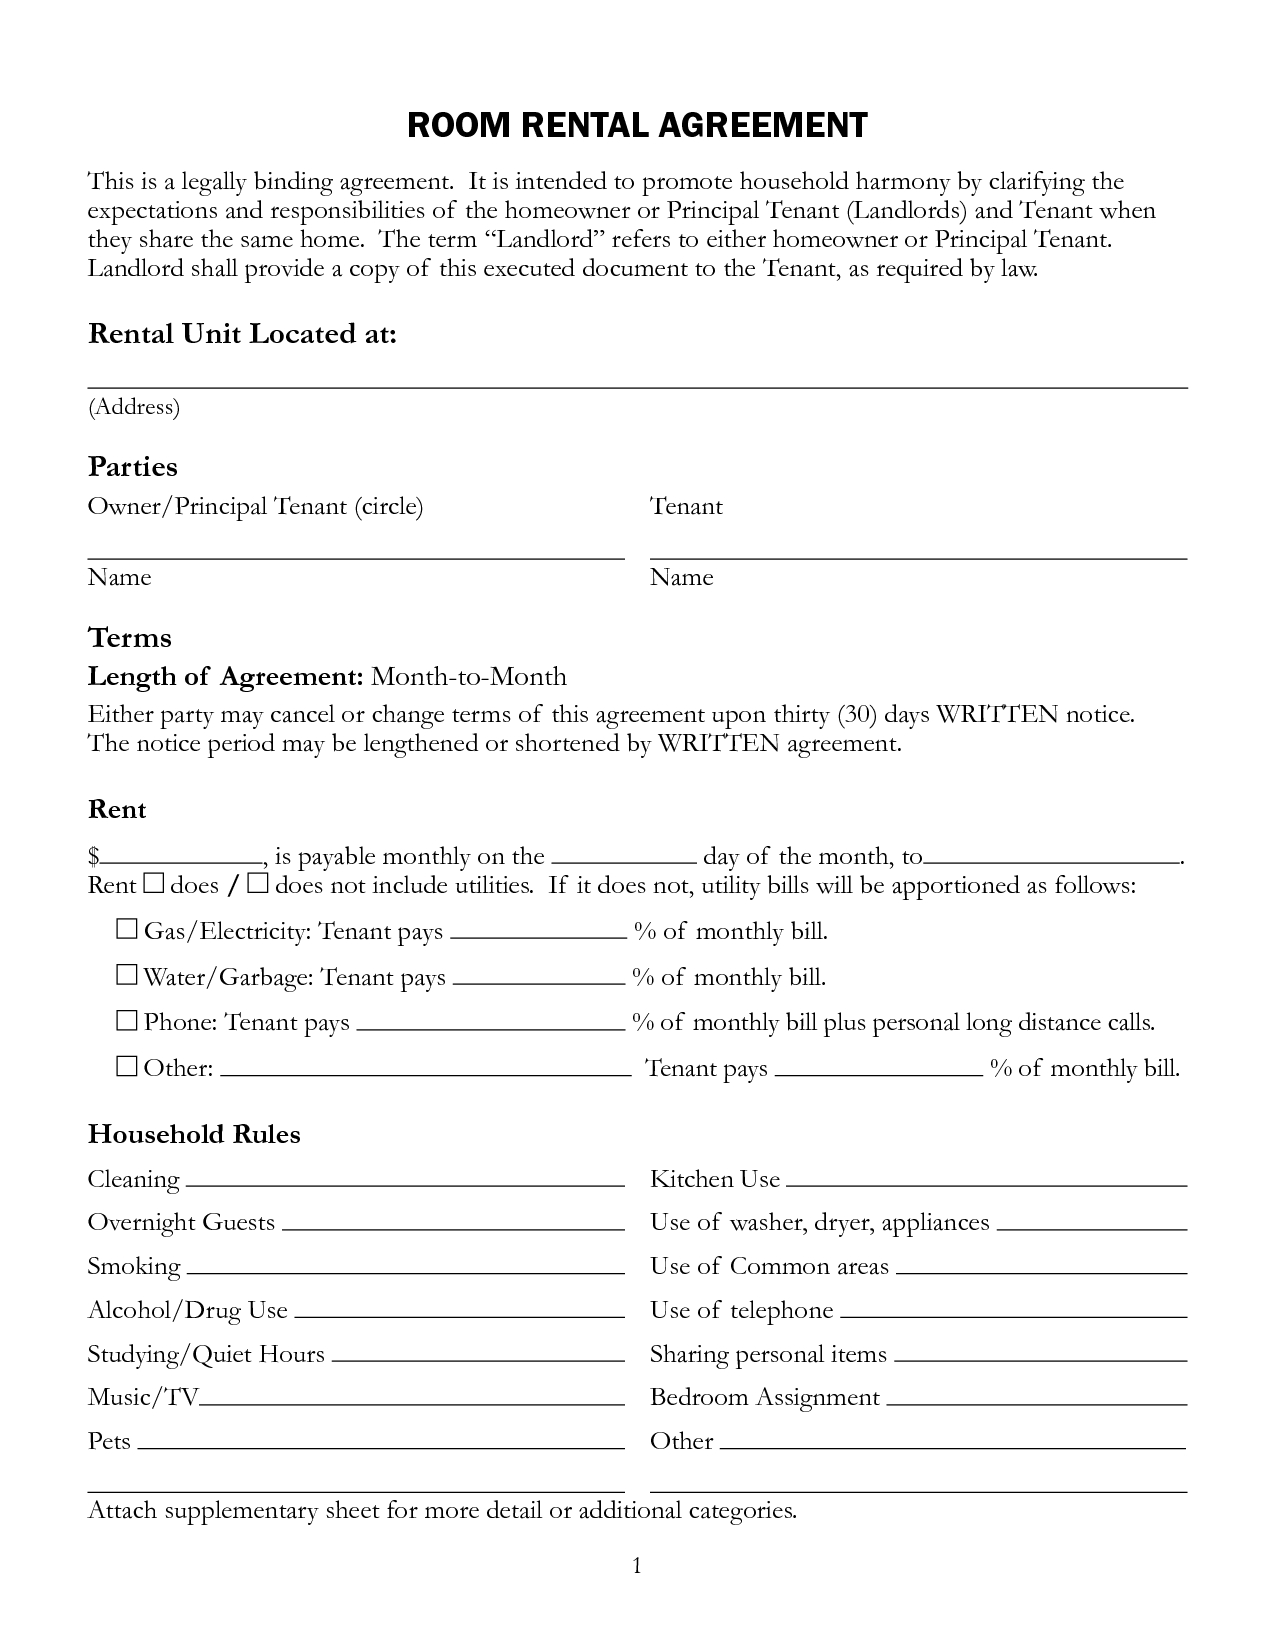 Free Printable Rental Lease Agreement Form Template | Bagnas - Free Printable Room Rental Agreement Forms